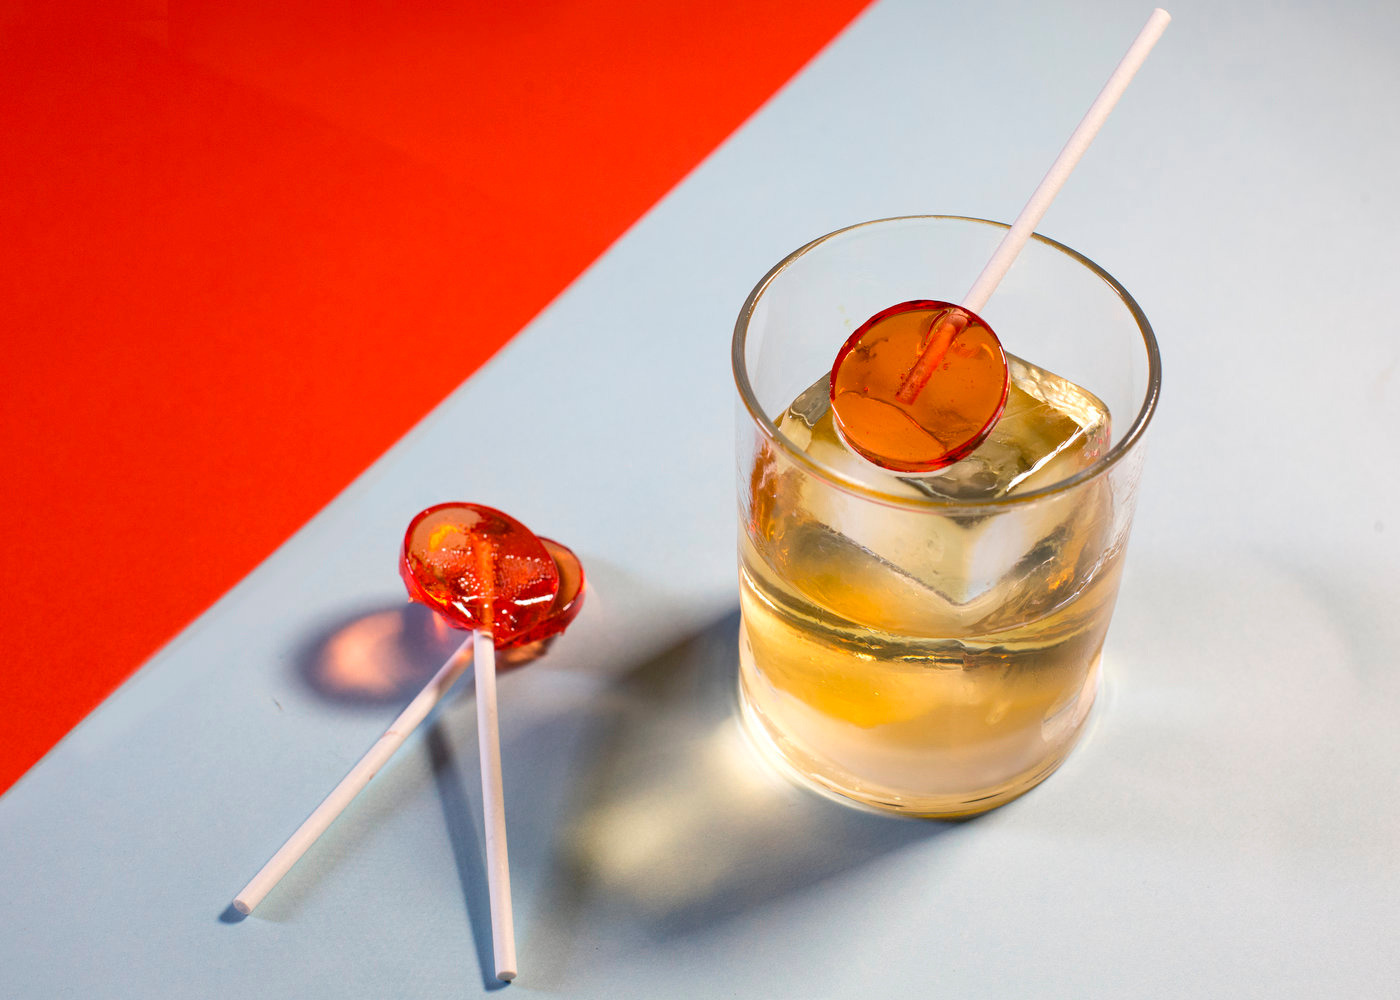 Cocktail bars in Singapore: Jigger & Pony